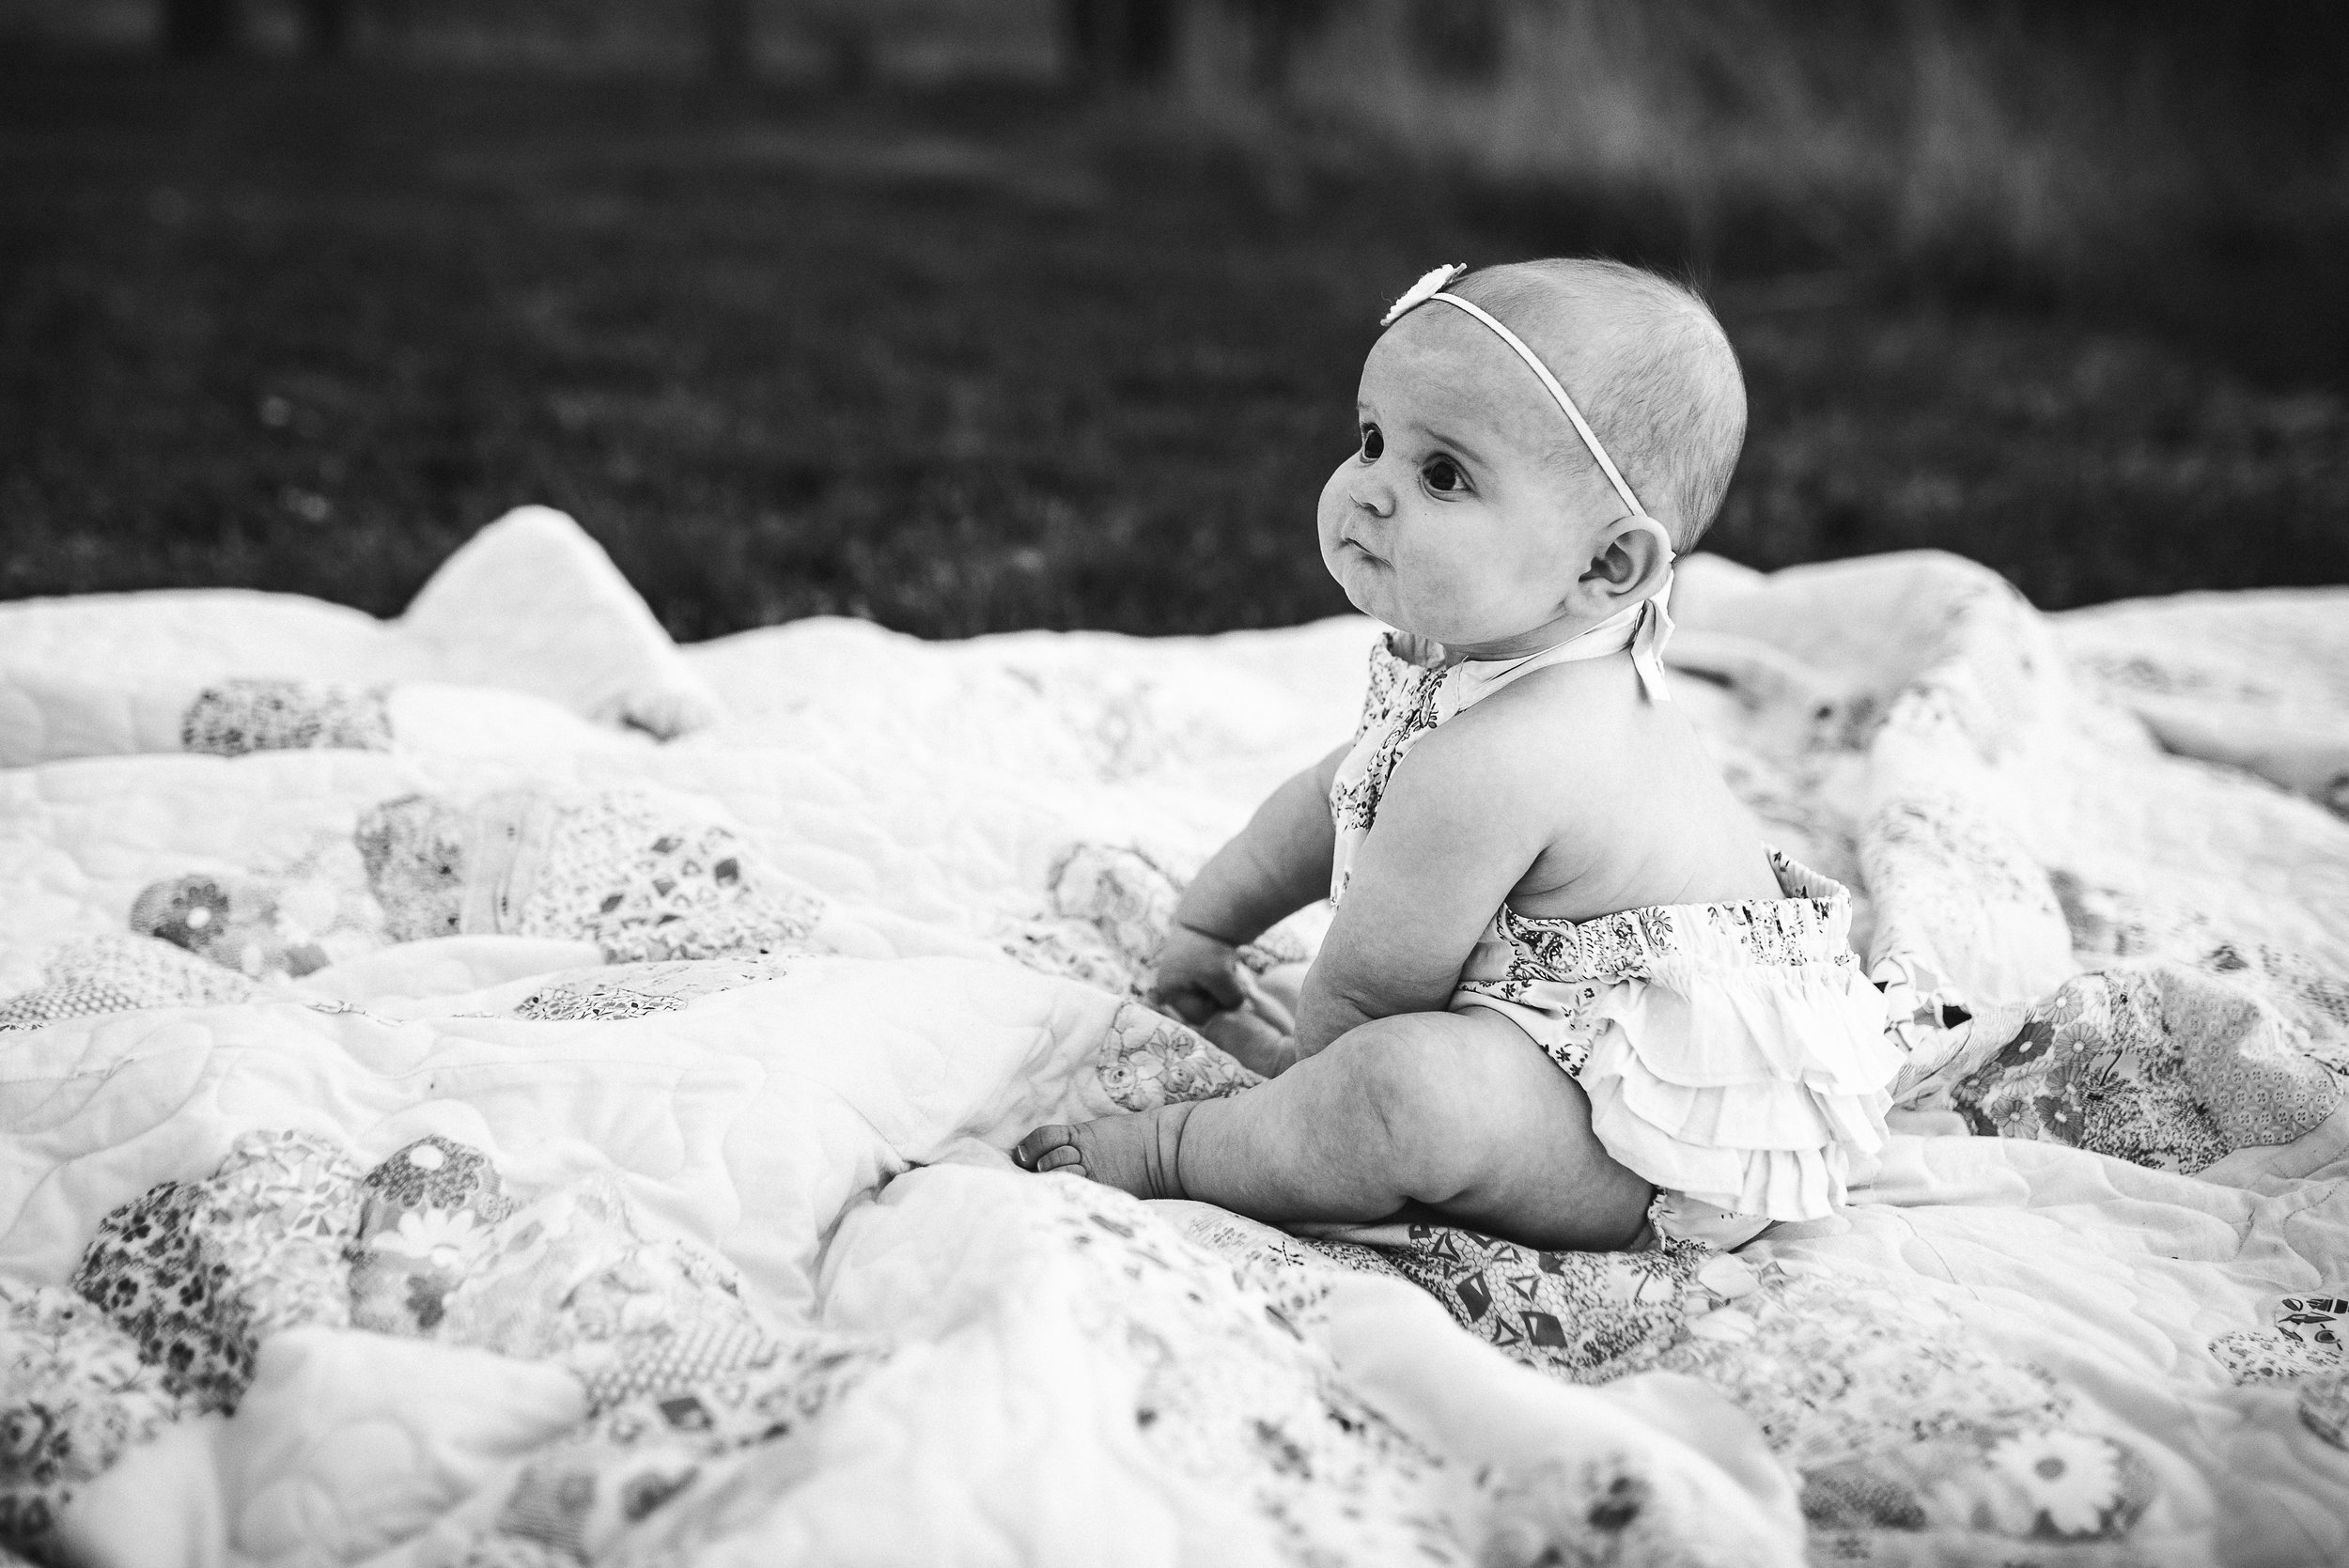 side view of baby girl in field